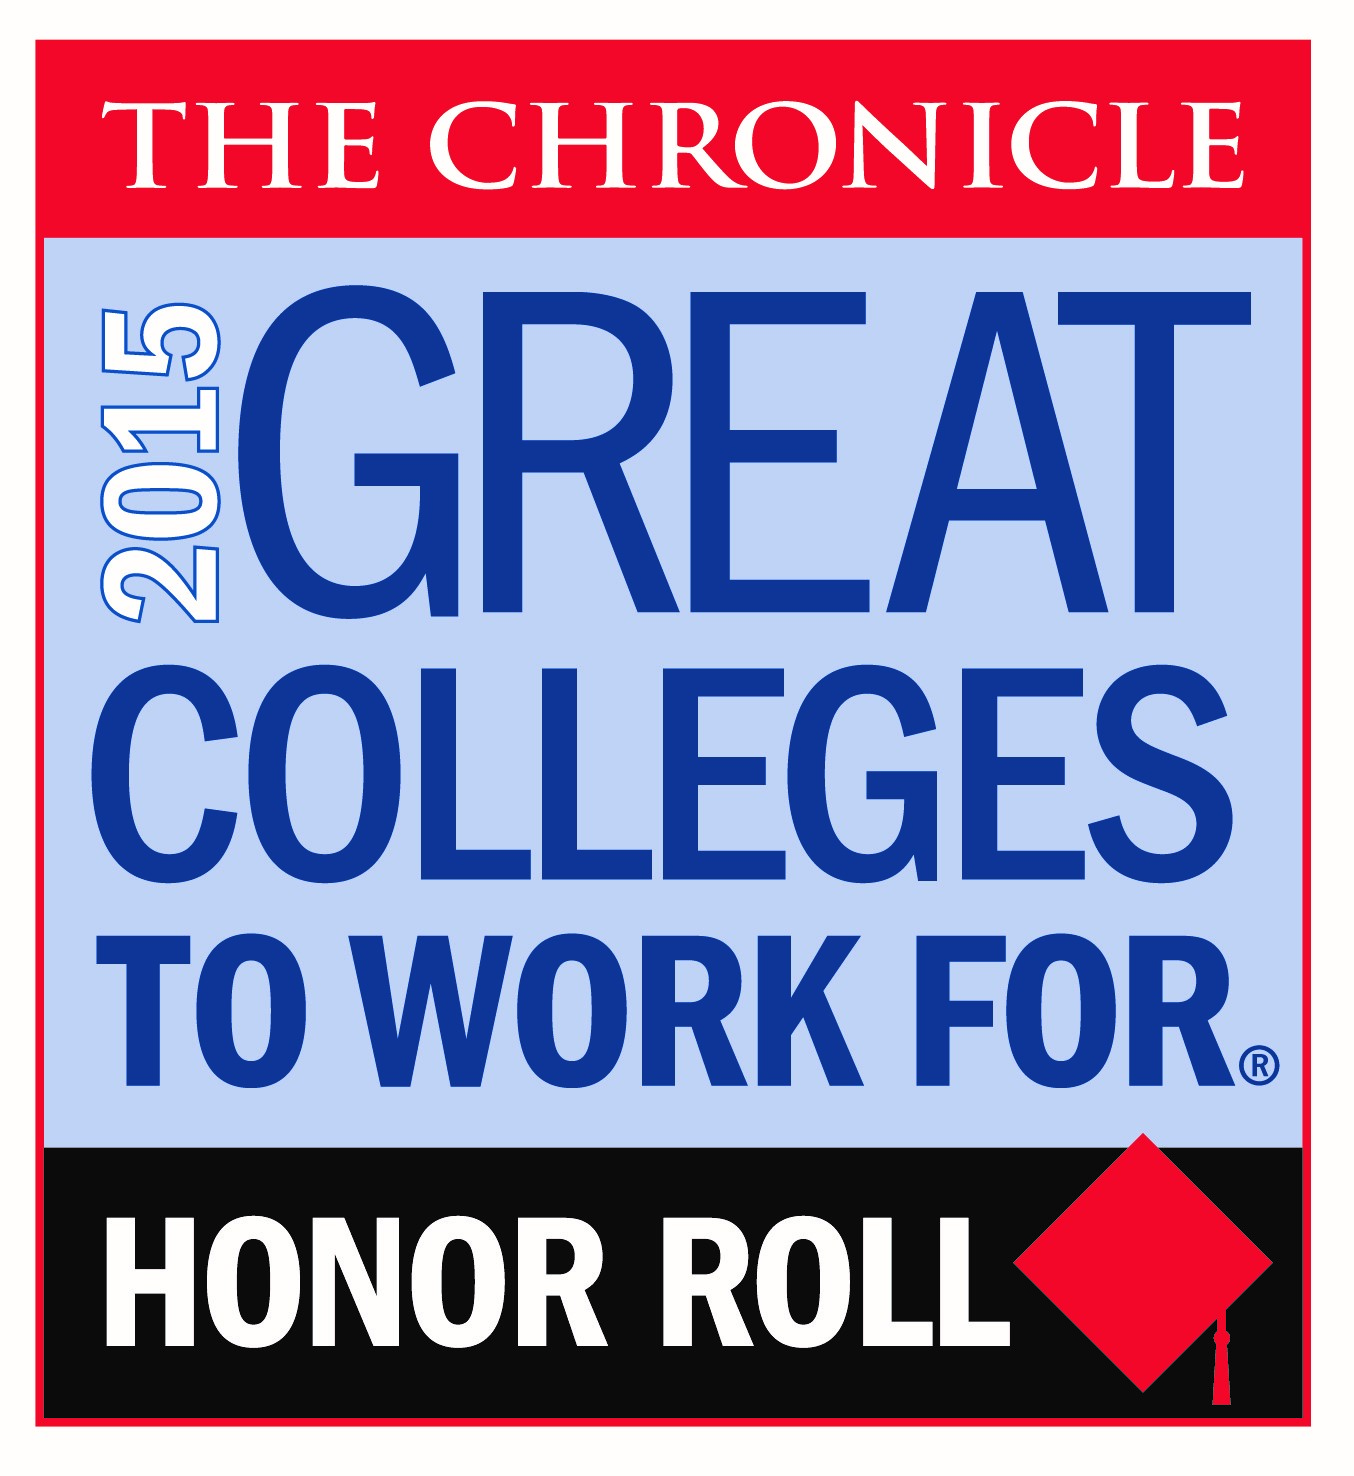 uco applicant job site chronicles survey results best colleges to work for